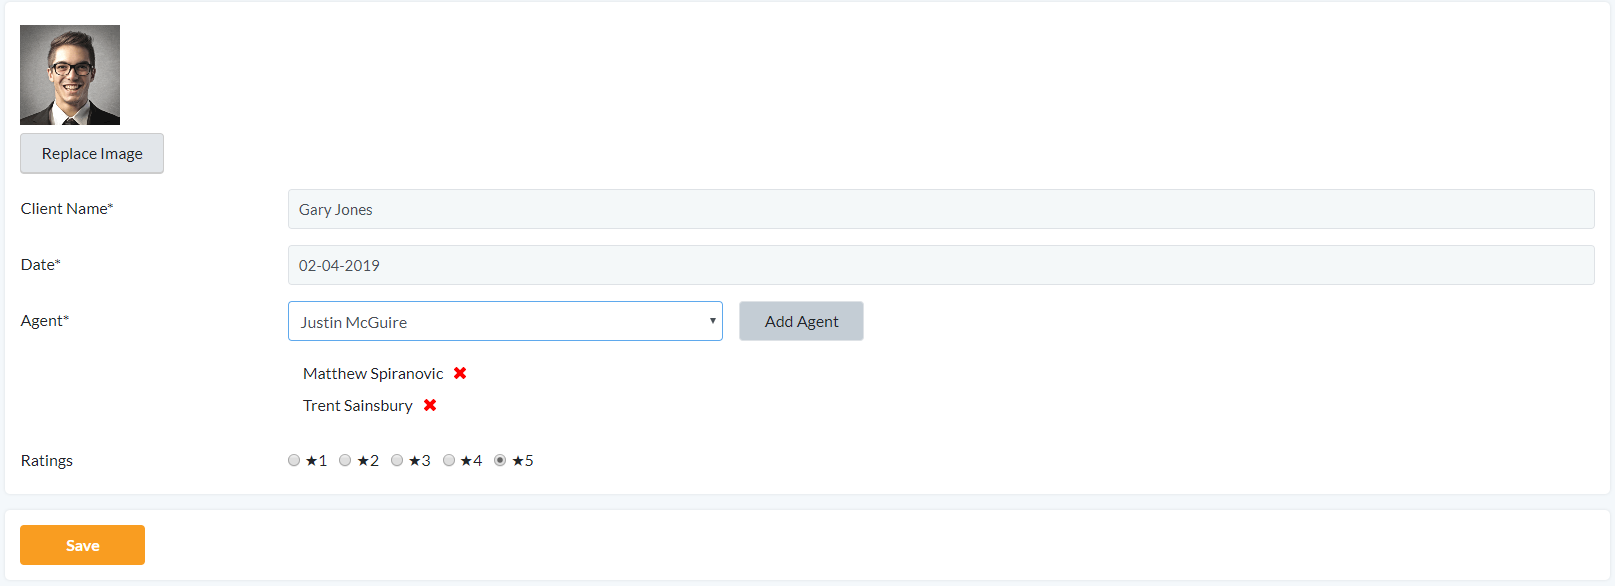 New Feature: Select multiple agents for testimonials